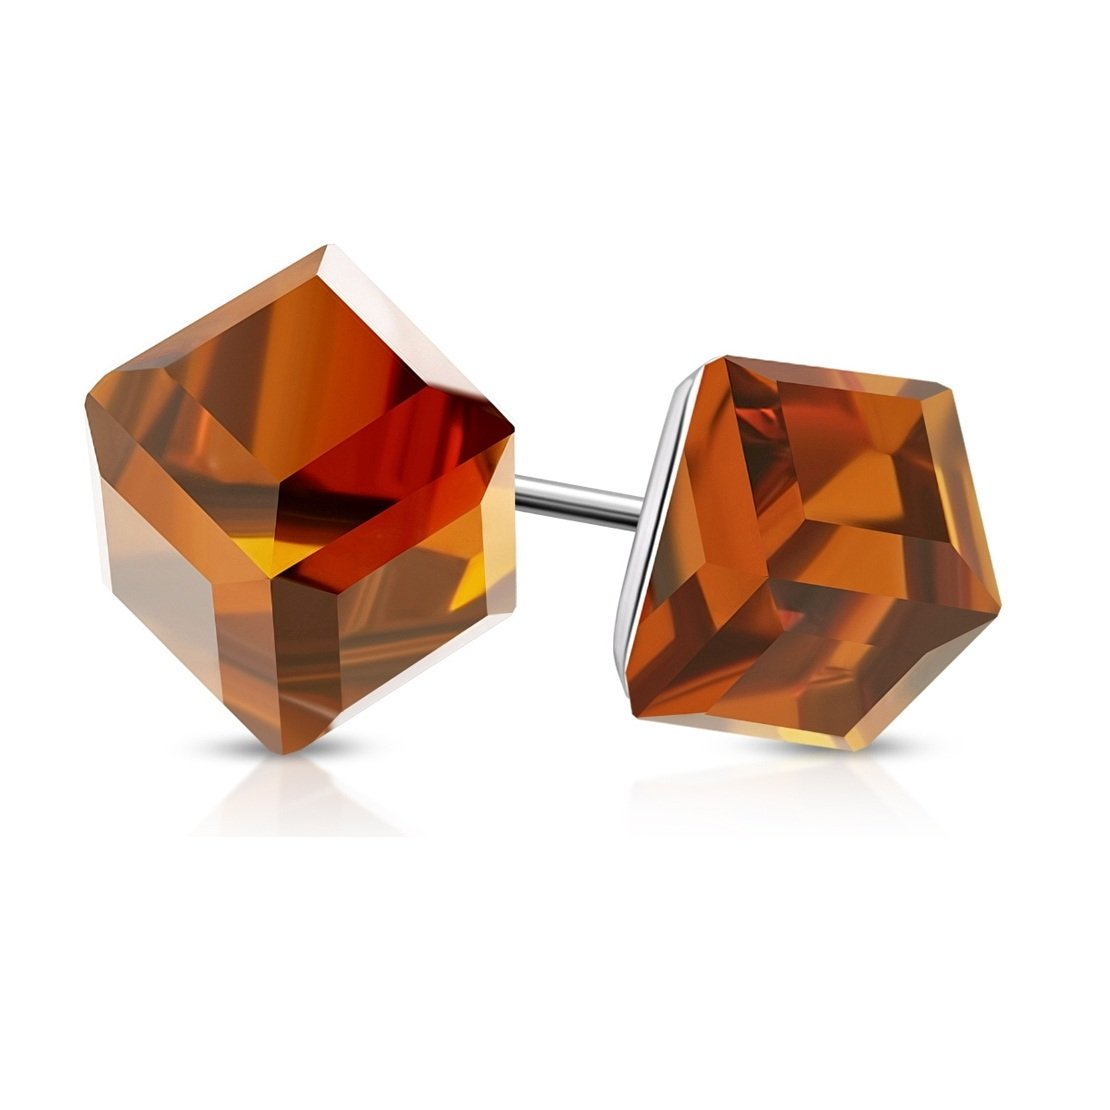 pair Stainless Steel Stud Earrings with Cube Smoked Topaz CZ